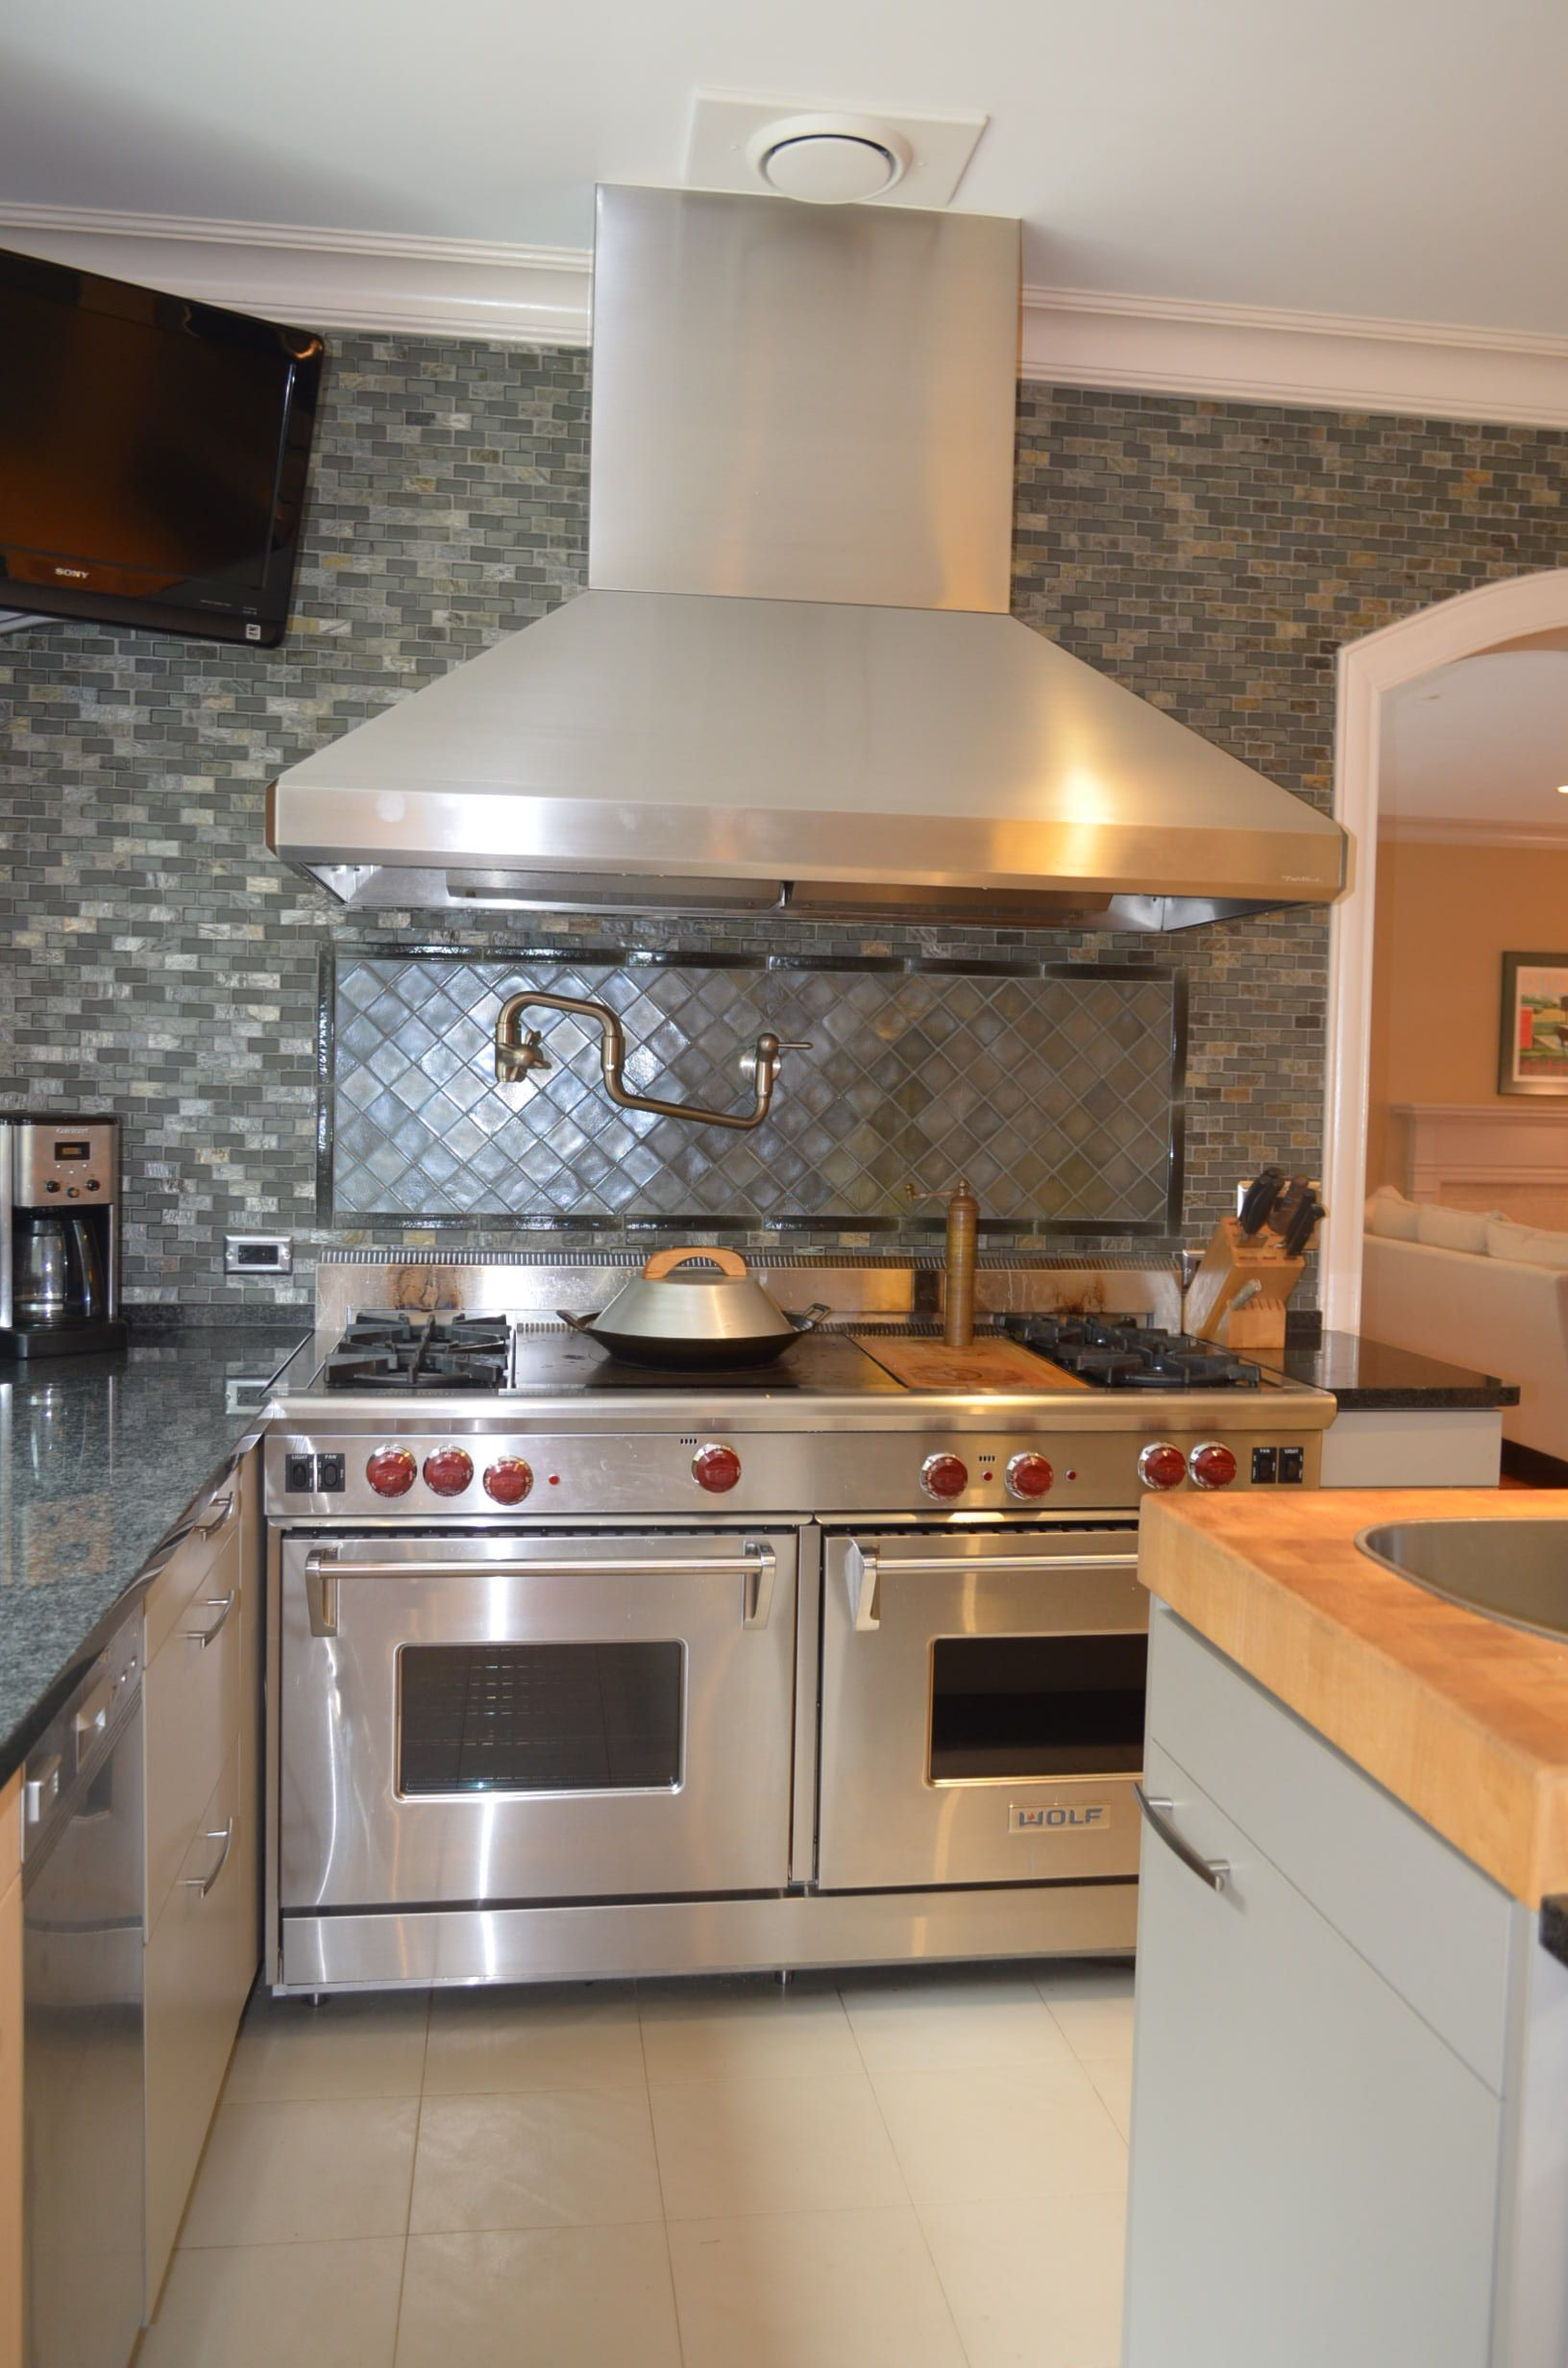 stunning glass tile backsplash with oversized hood vent and